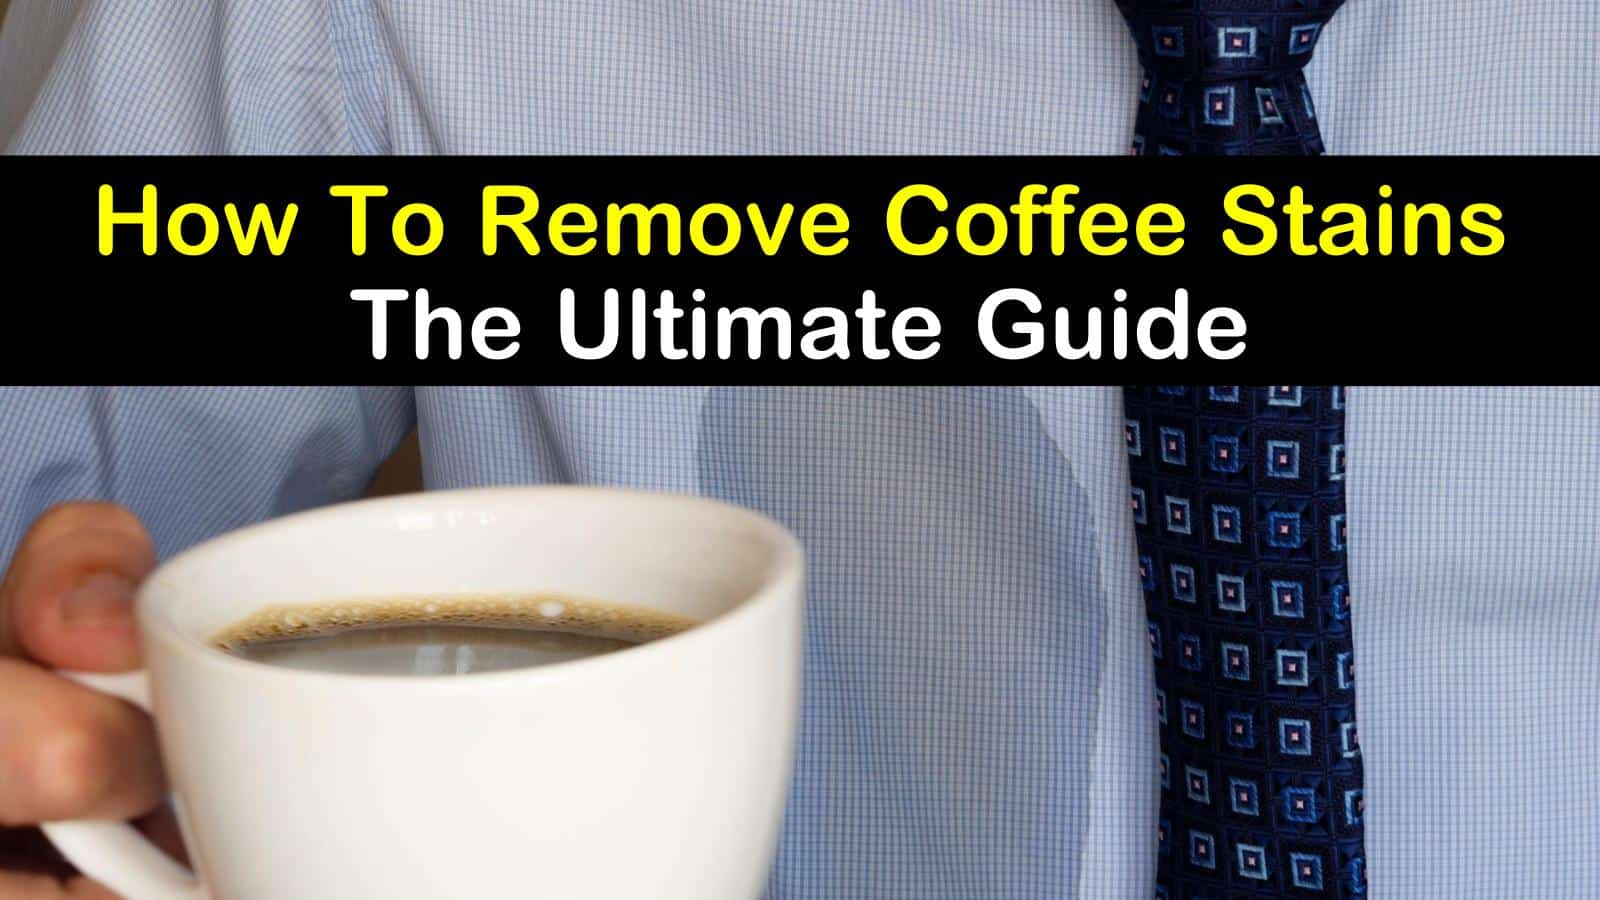 How To Remove Coffee Stains The Ultimate Guide